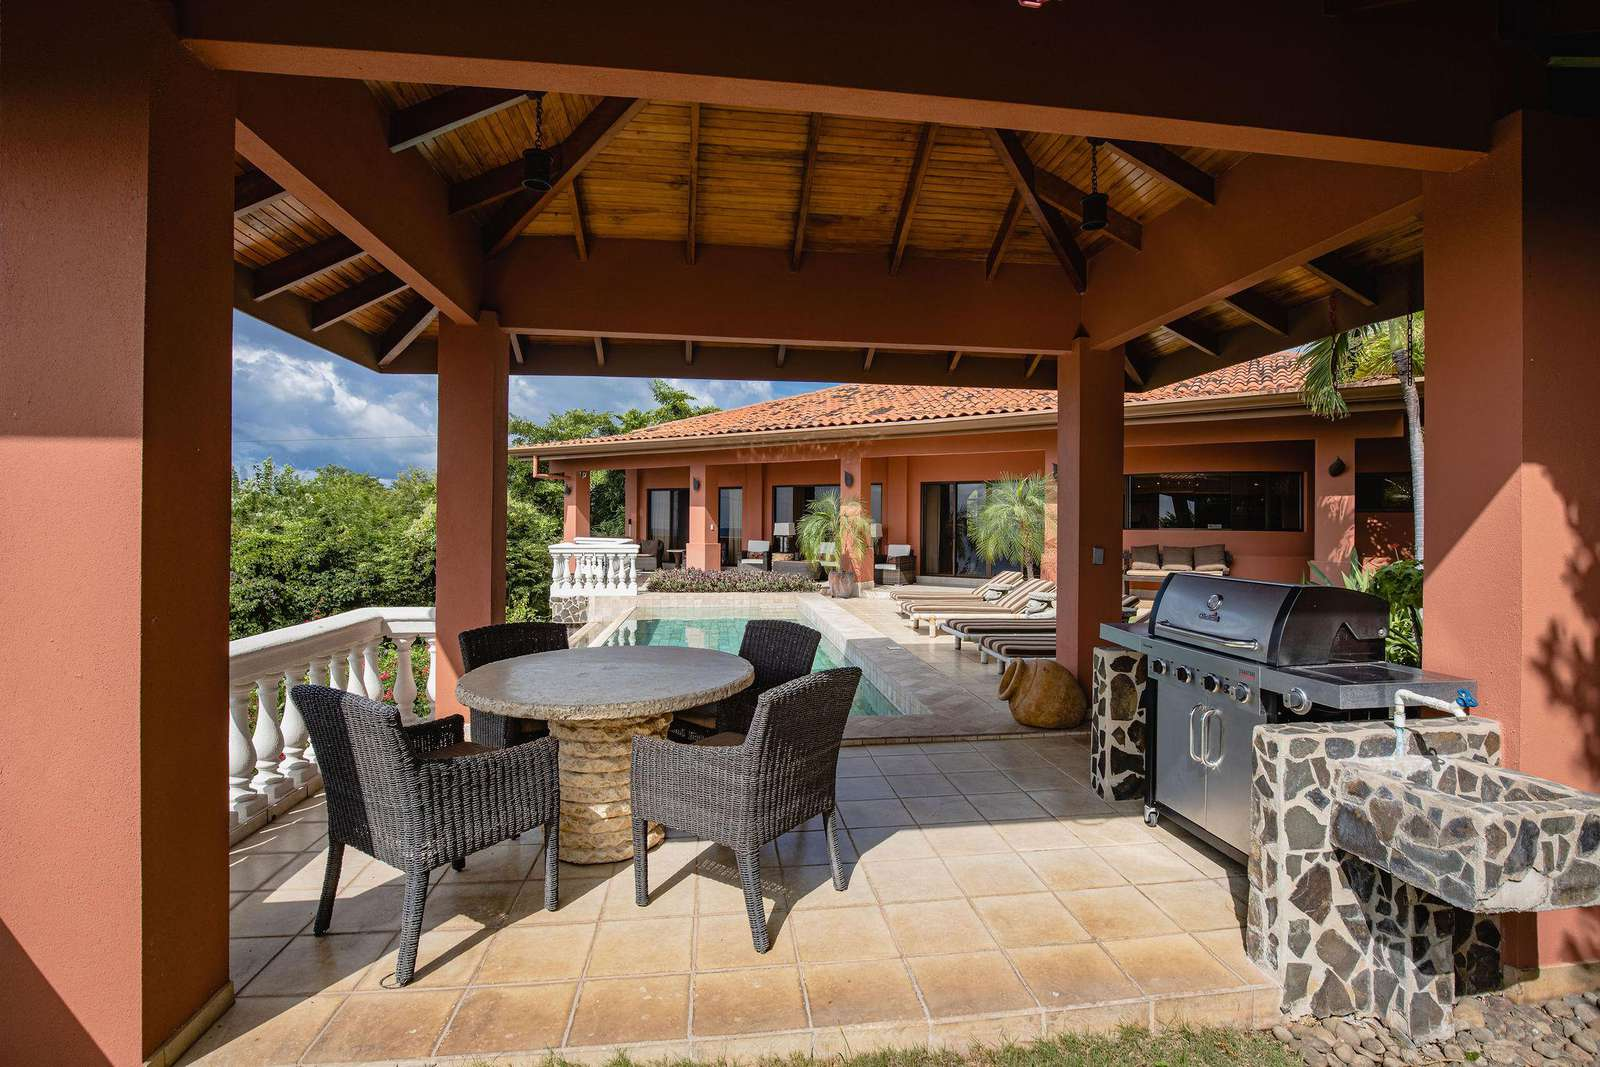 Covered palapa area, BBQ grill, ocean views